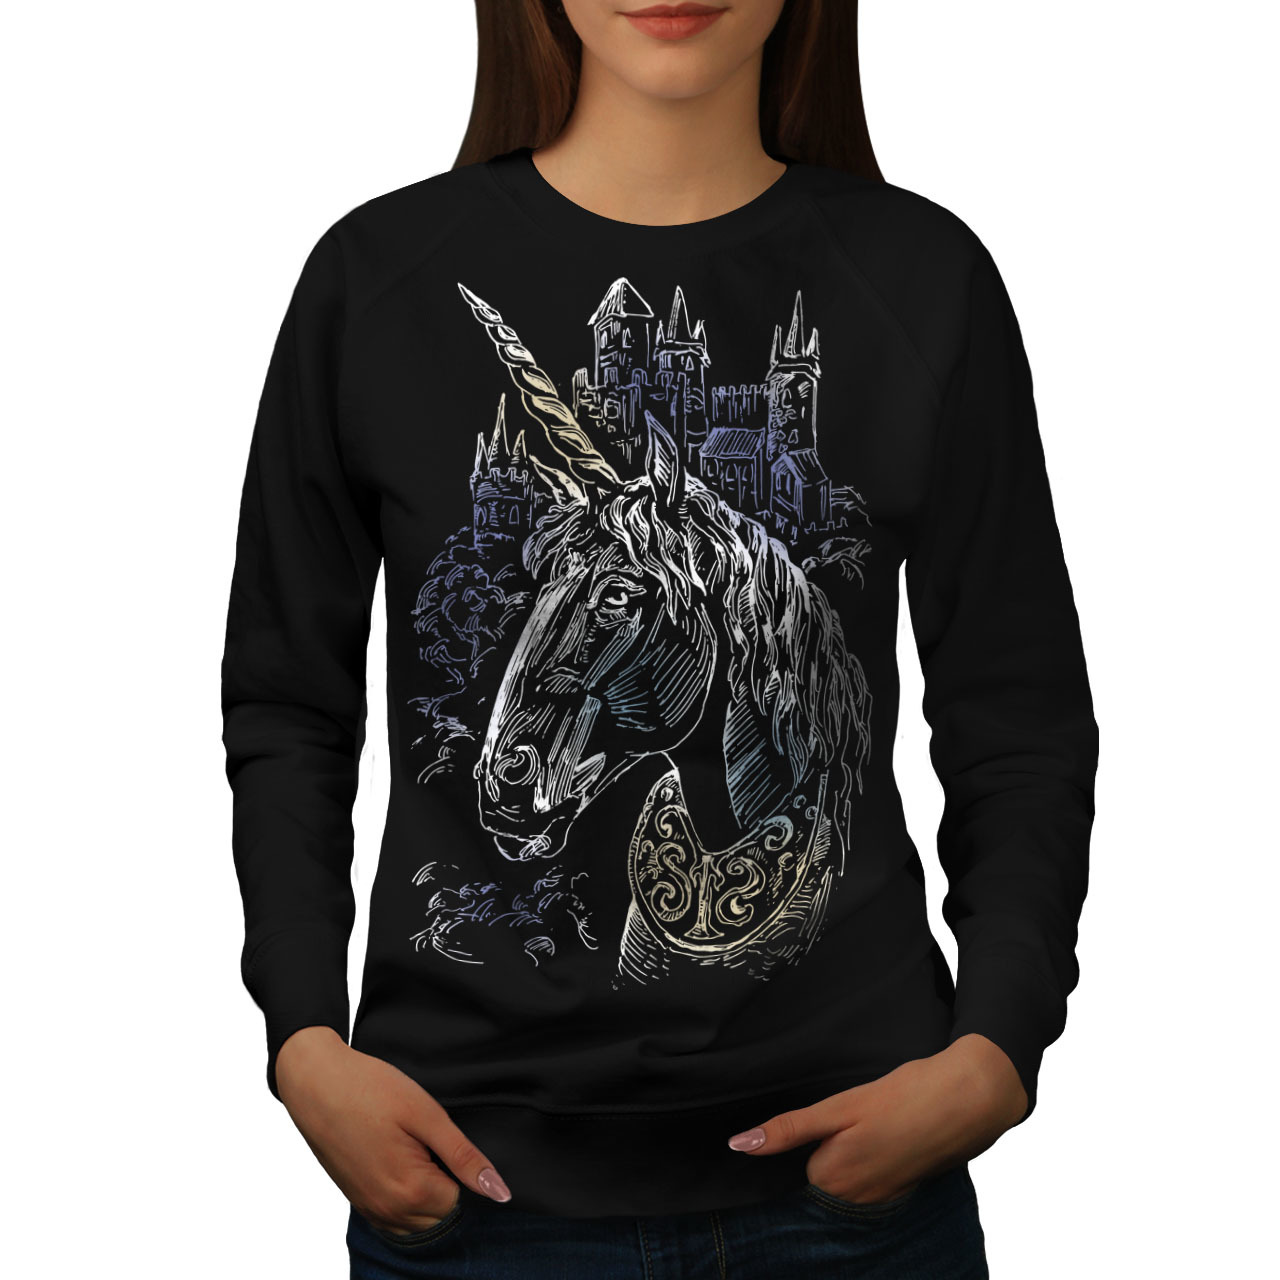 Primary image for Unicorn Unique Fantasy Jumper Medieval Art Women Sweatshirt